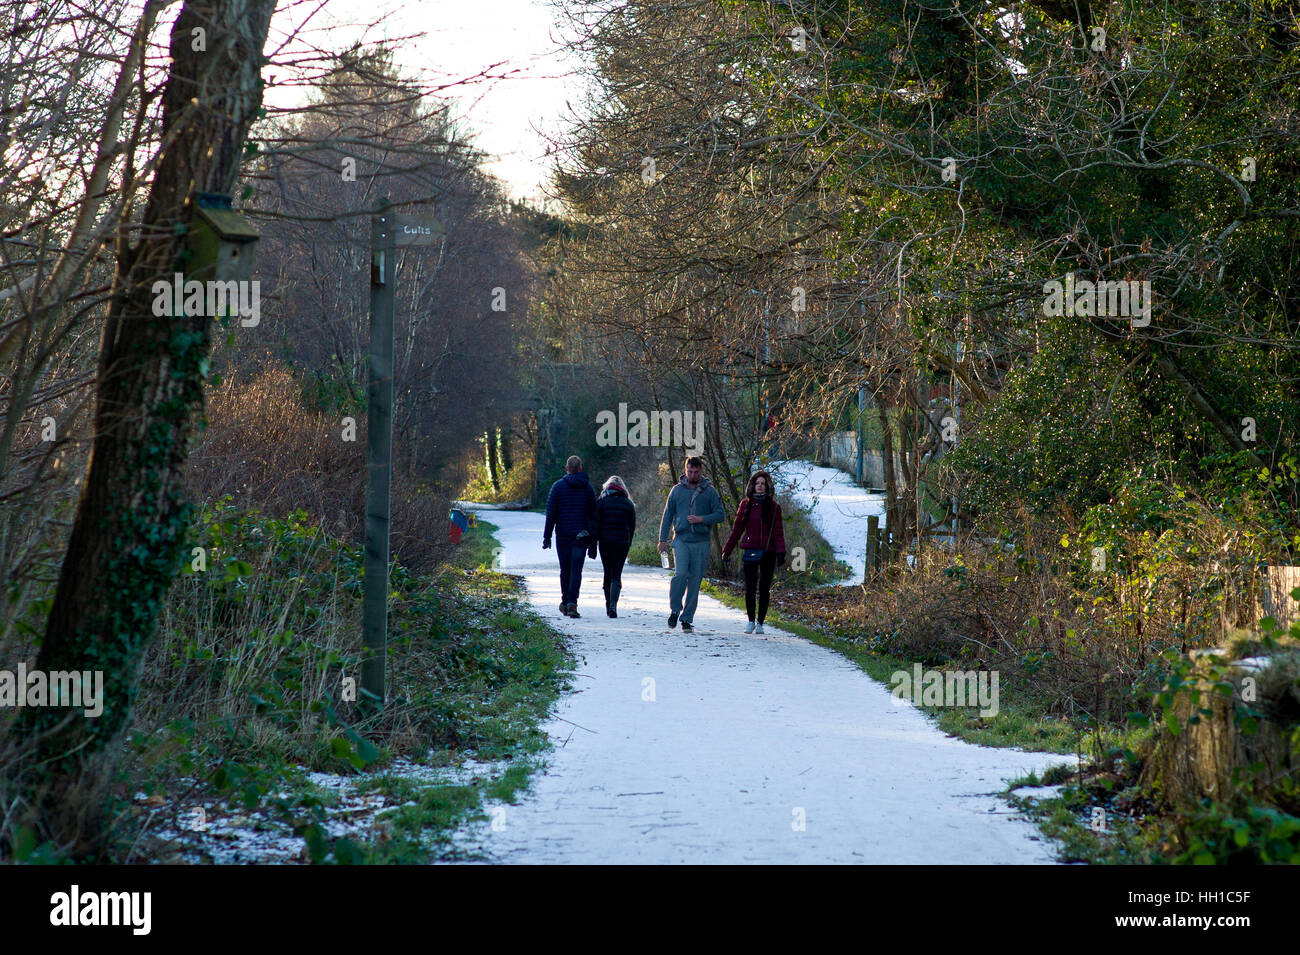 Walkers  on the Deeside way at Cults, Aberdeen. Former Royal Deeside Railway line running from Aberdeen to Ballater - Stock Image